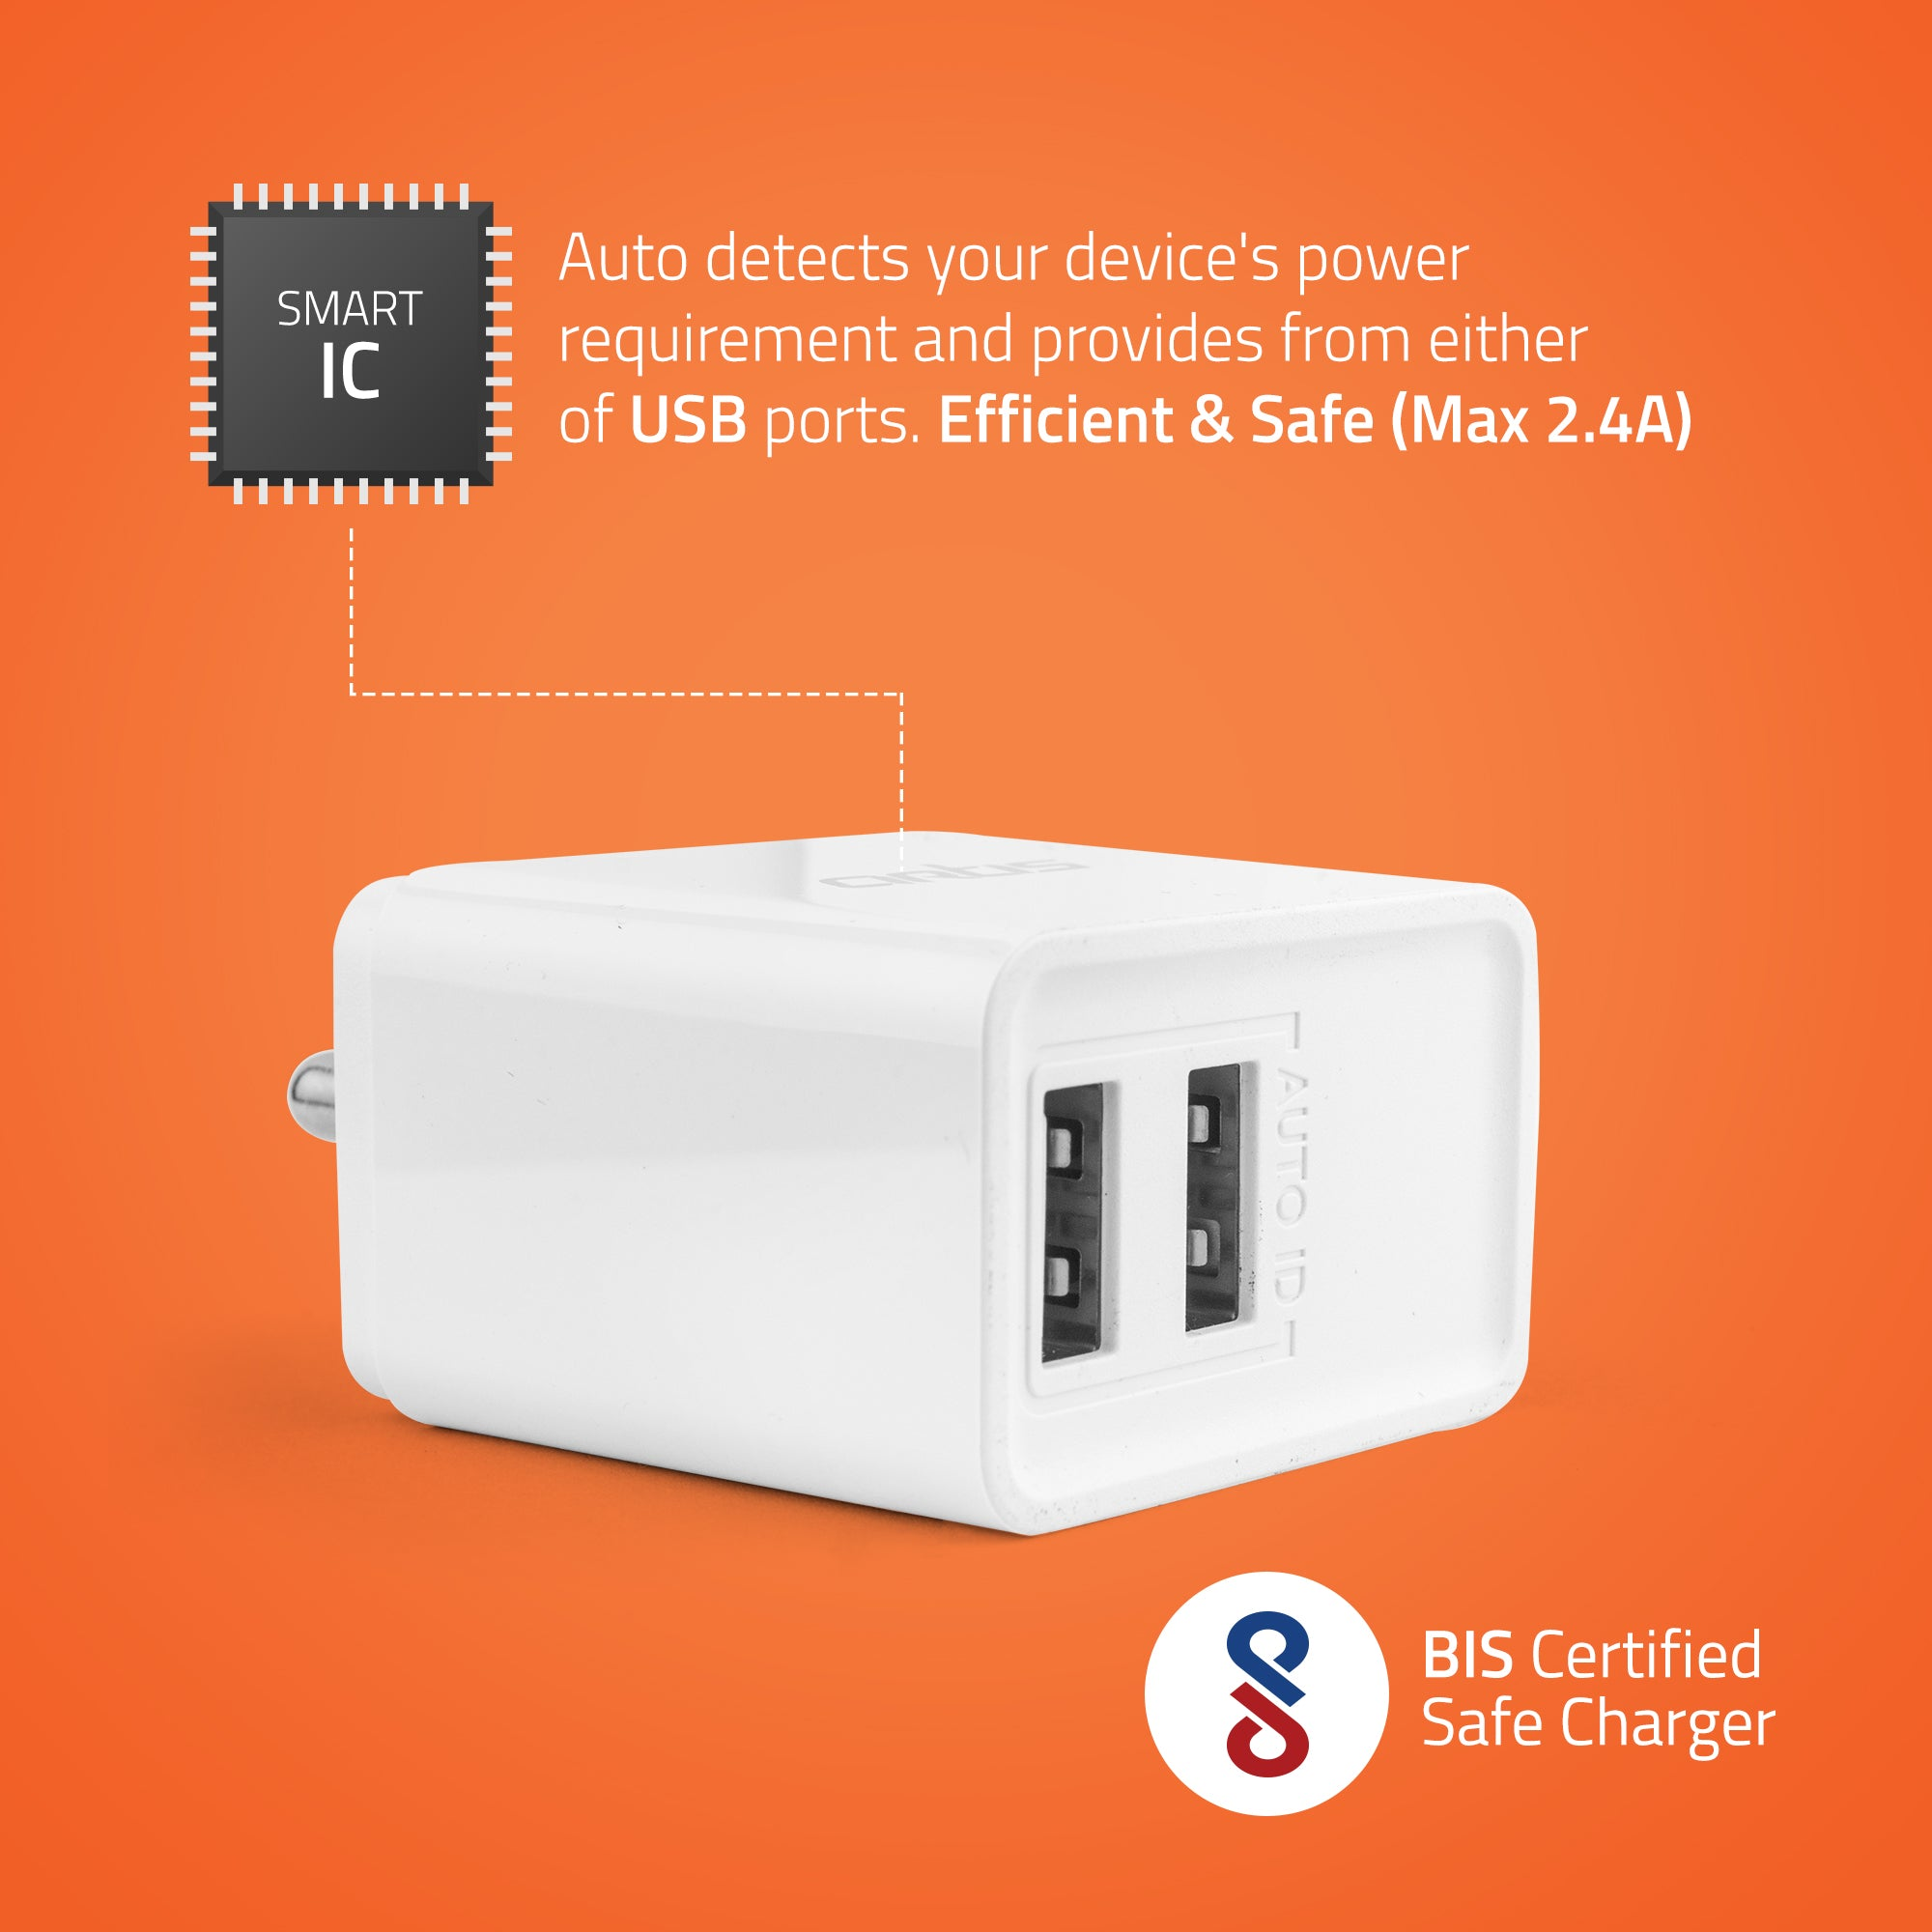 U200 USB Wall Charger with Iphone Cable